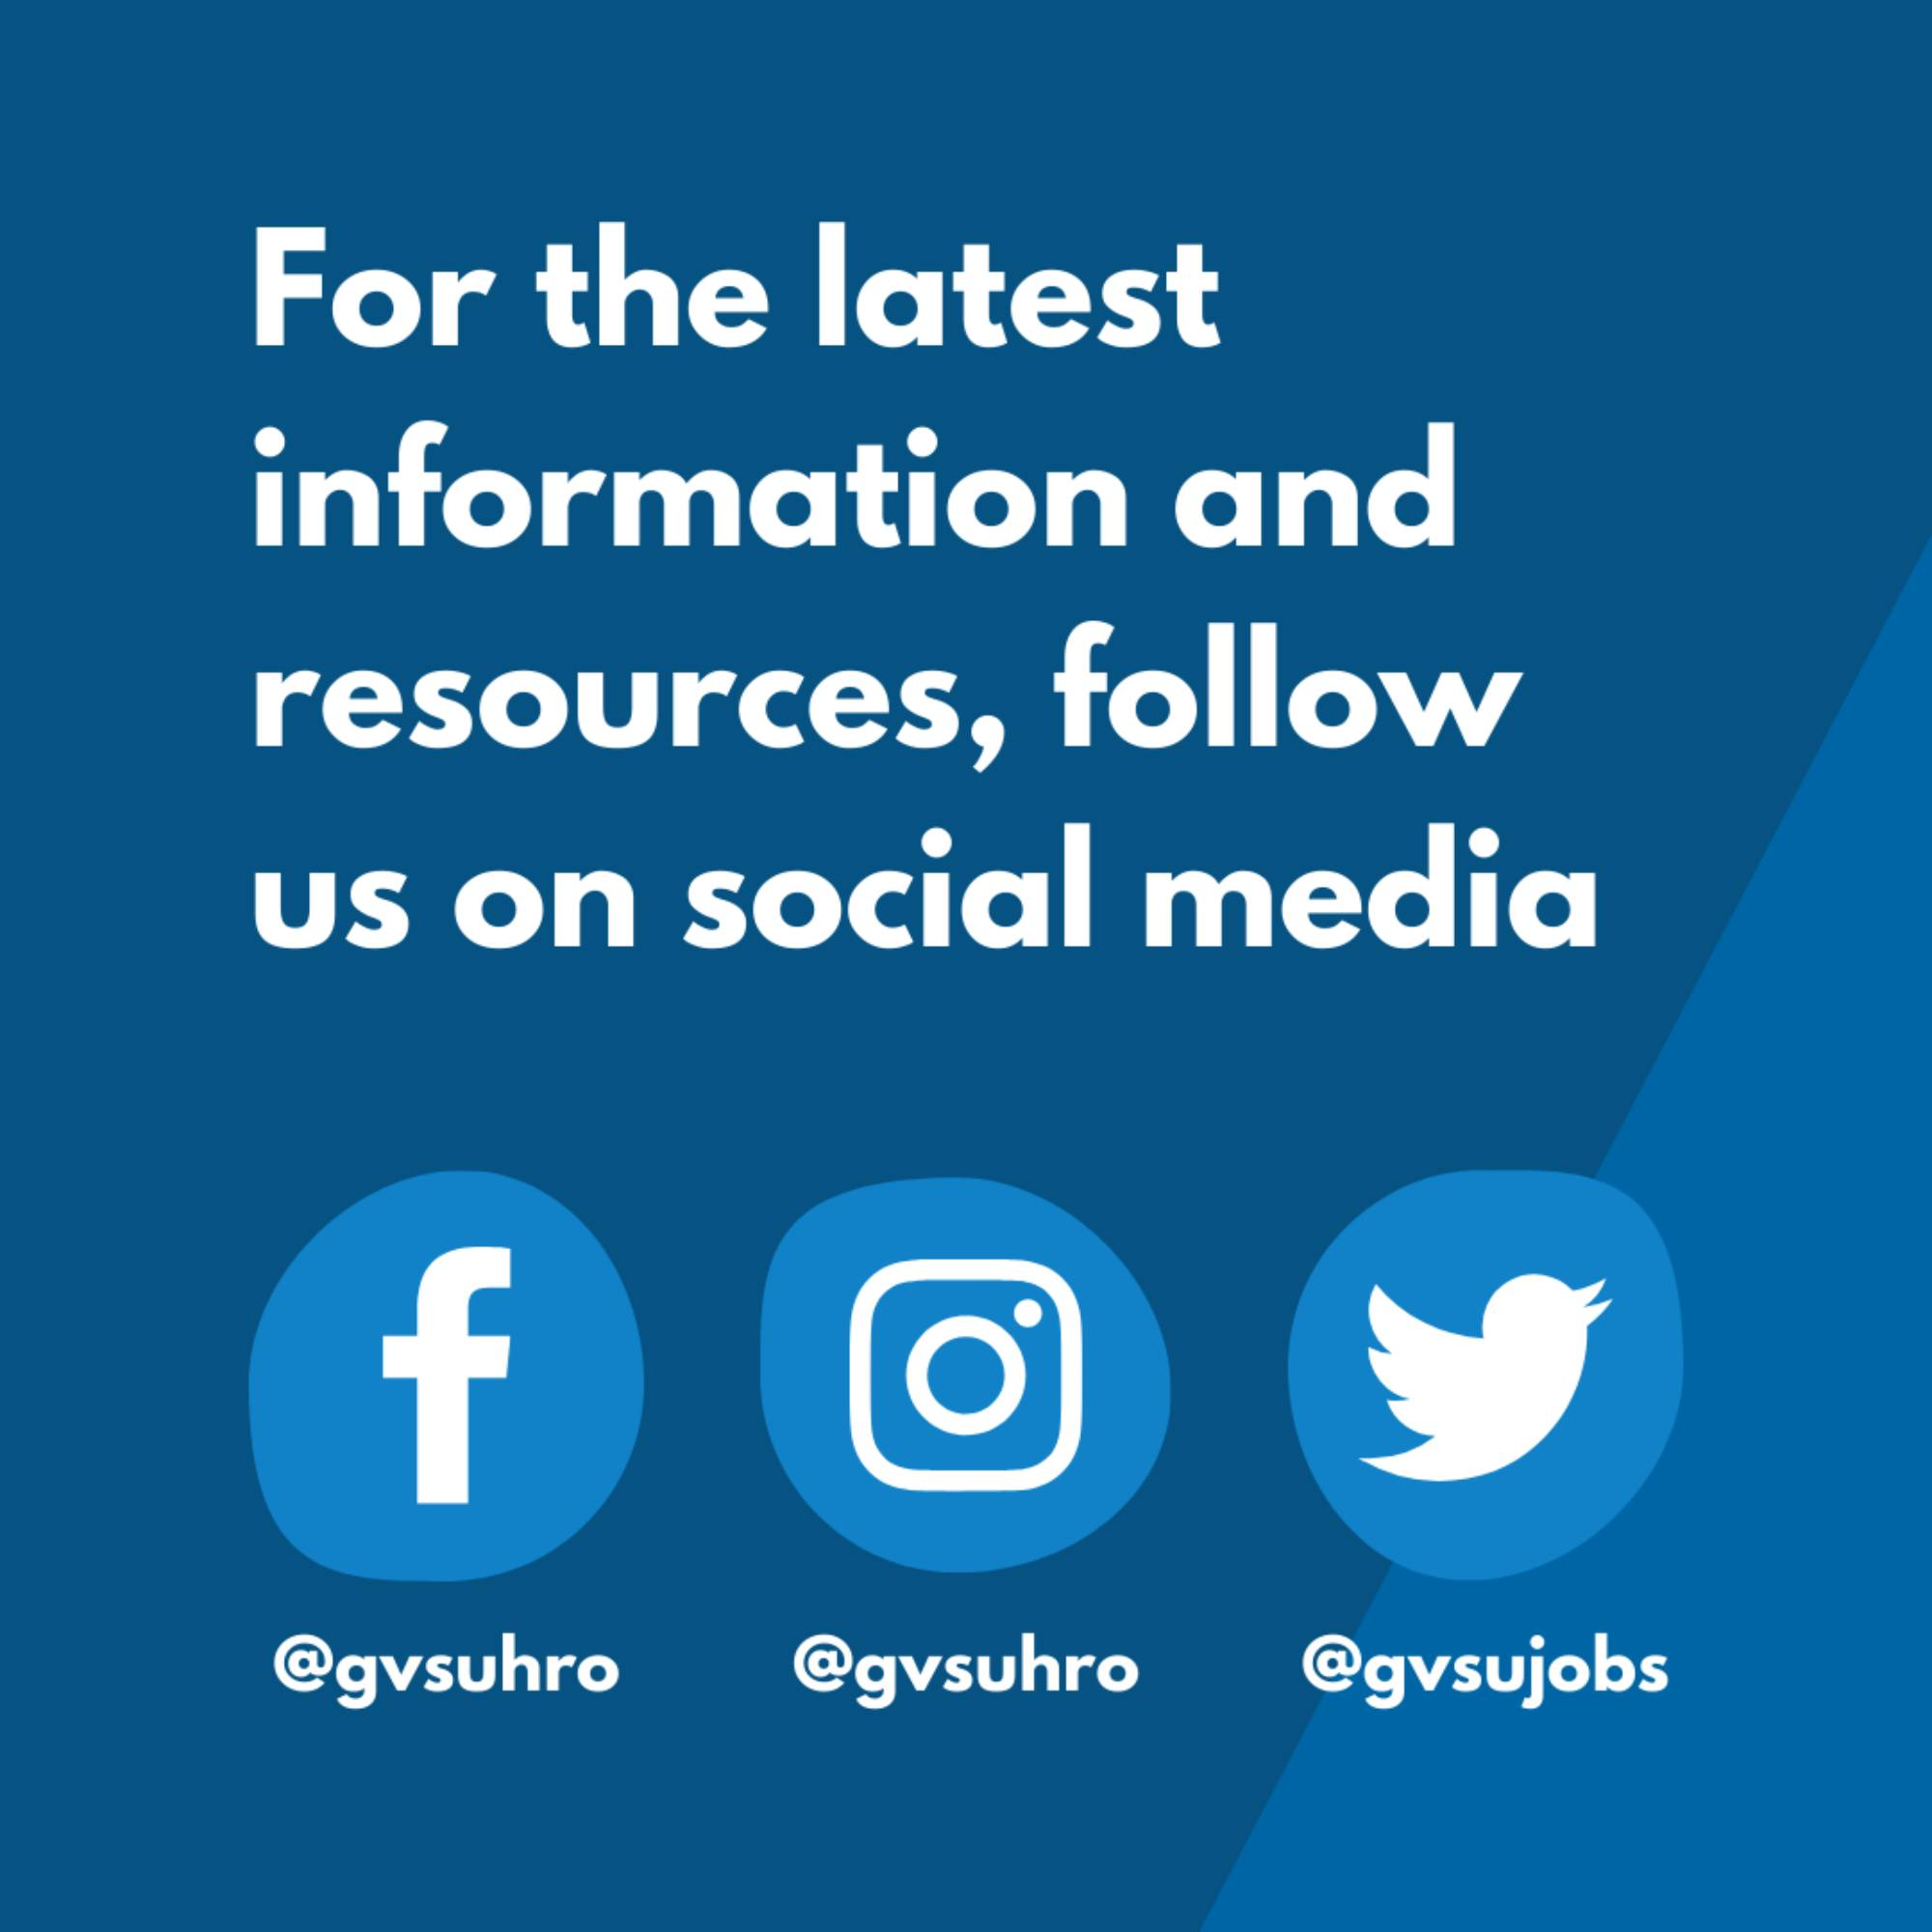 For the latest information and resources, follow us on social media! Facebook: @gvsuhro; Instagram: @gvsuhro; Twitter: @gvsujobs.